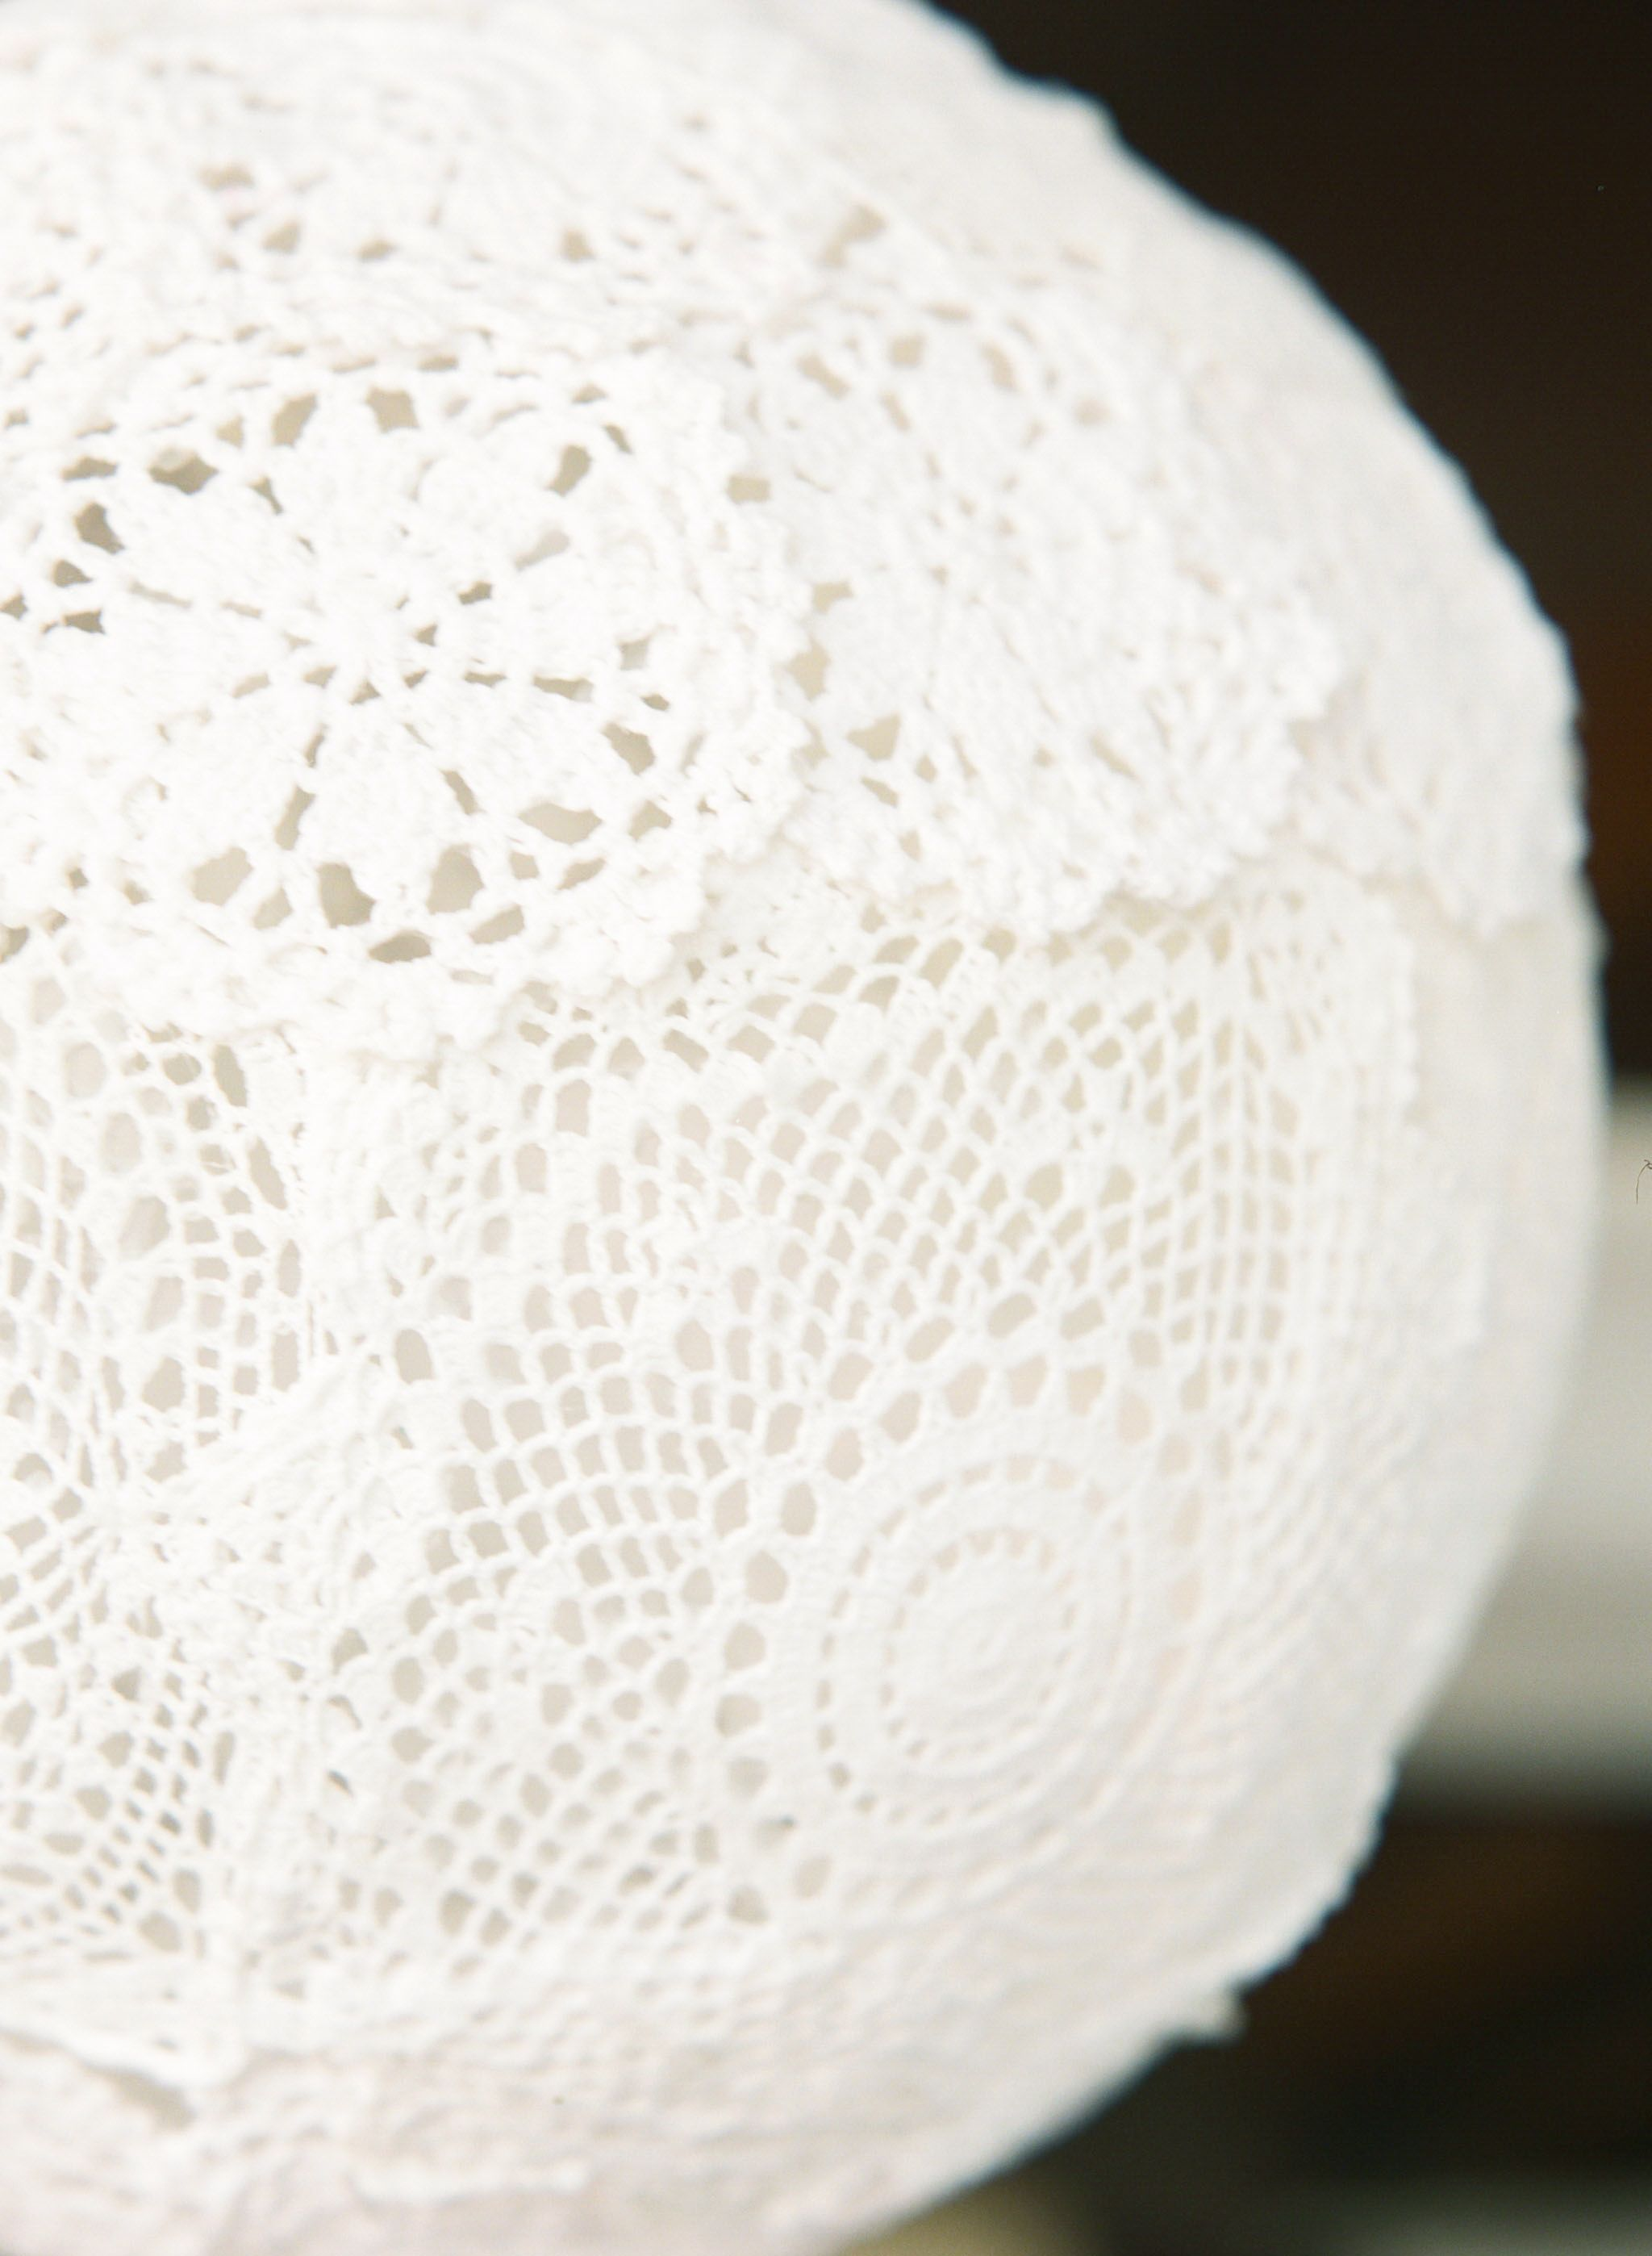 Lace doily lantern made with much help from @Kyla Rae